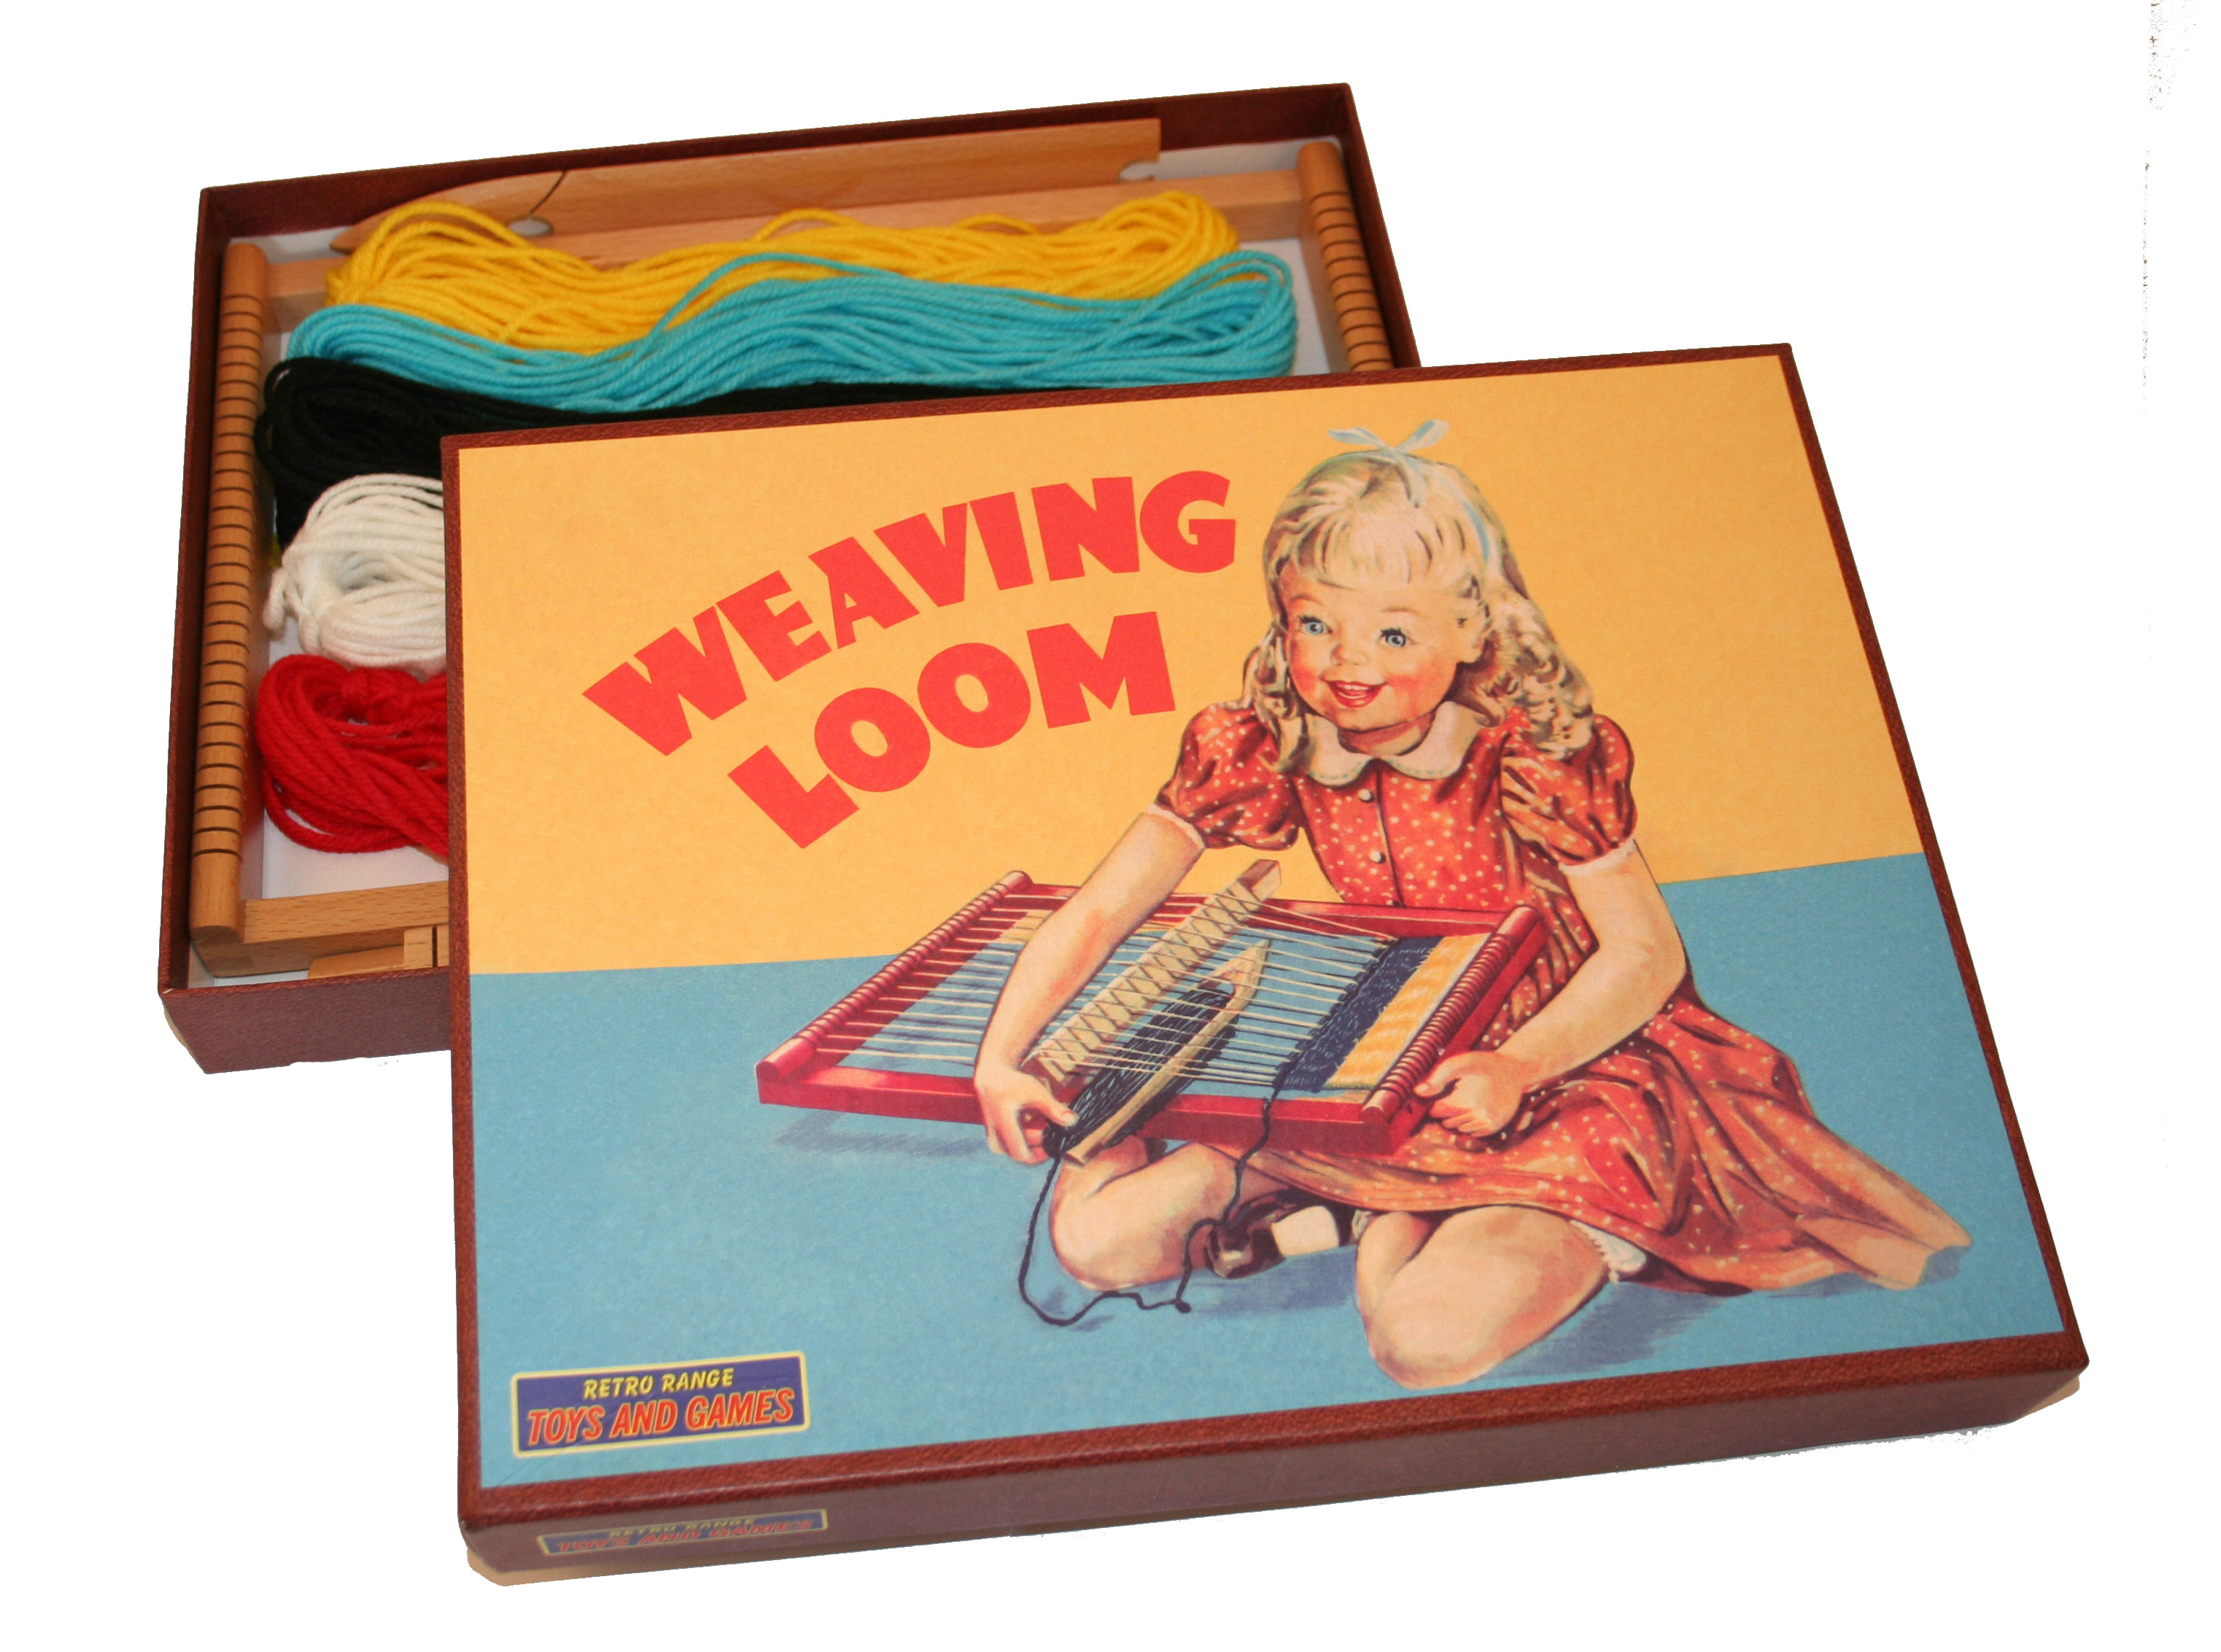 Weaving loom 10-179 Low res